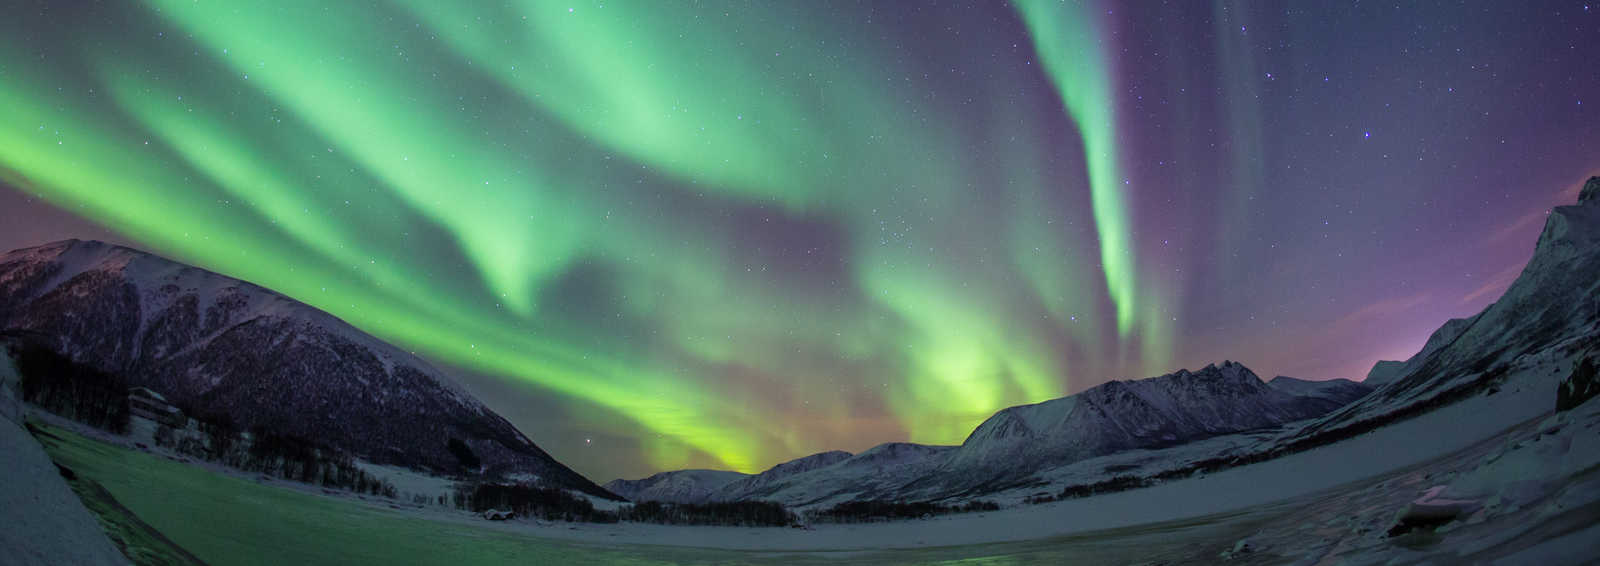 Fabulous Northern Lights over Buknesfjord, seen from the Andoy Friluftssenter